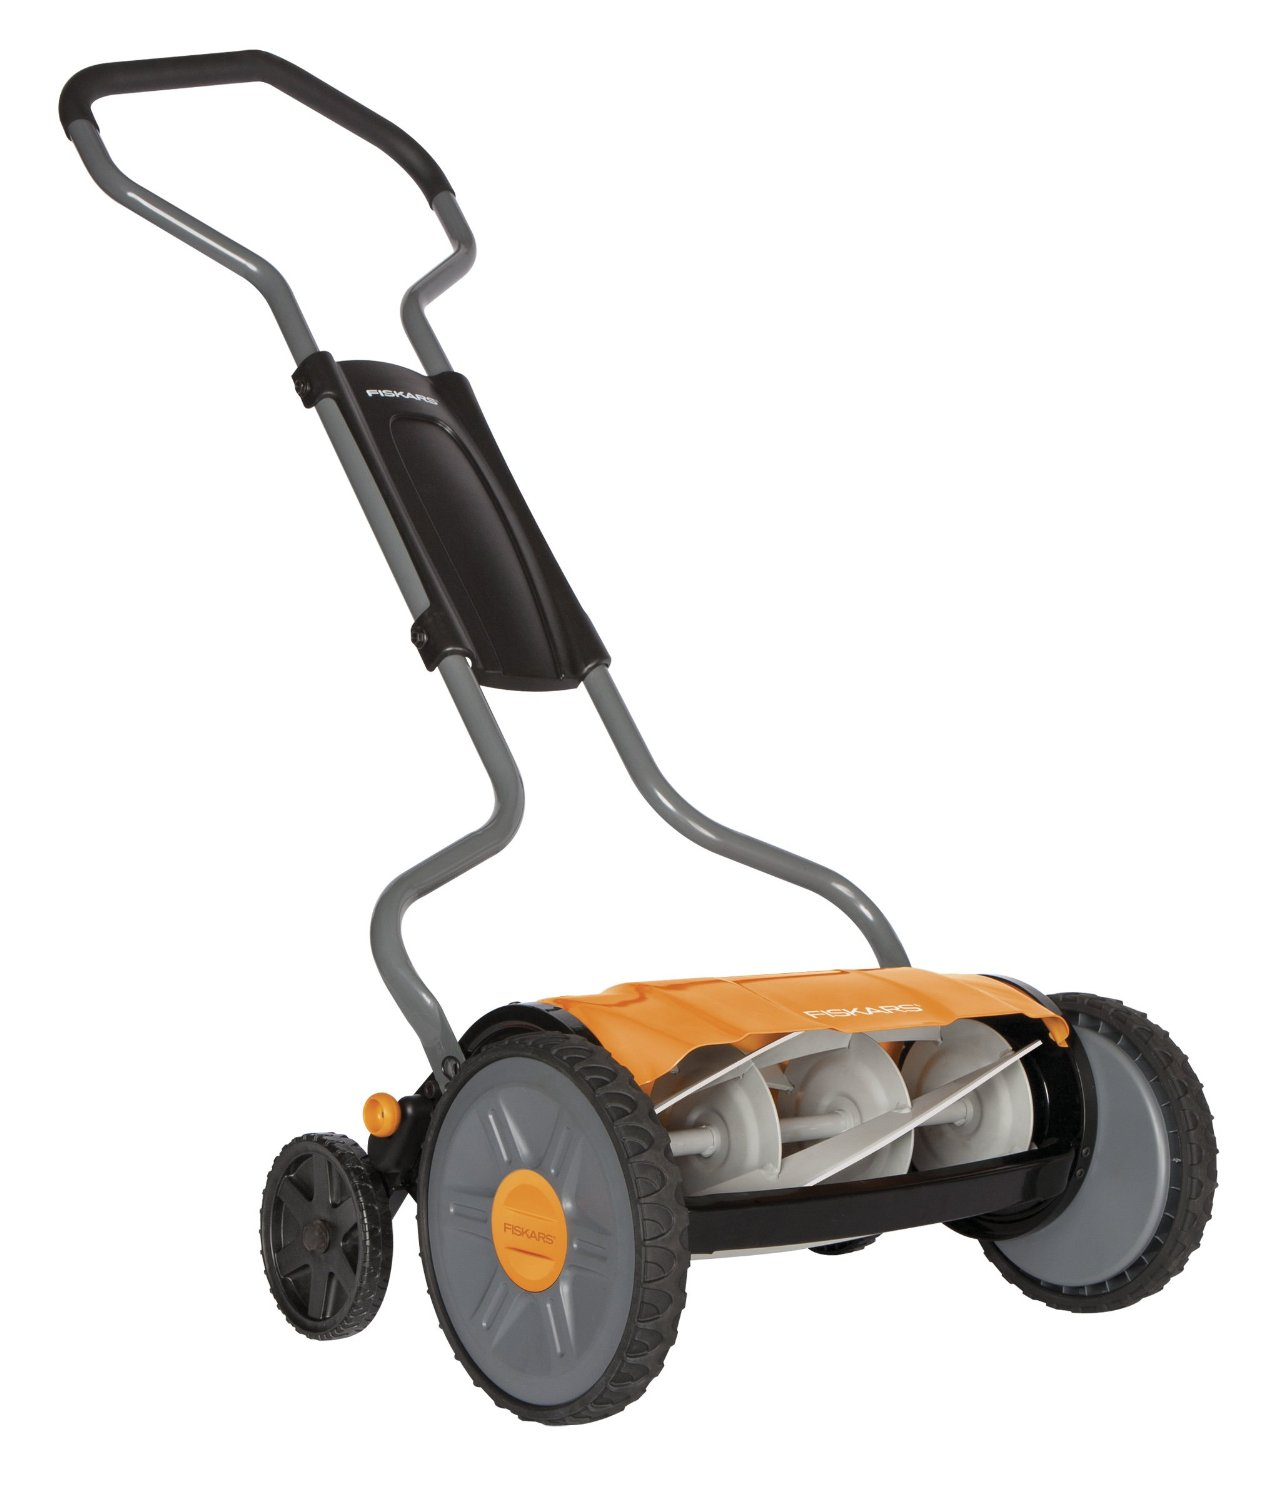 fiskars-362070-1001-17-staysharp-plus-push-reel-lawn-mower